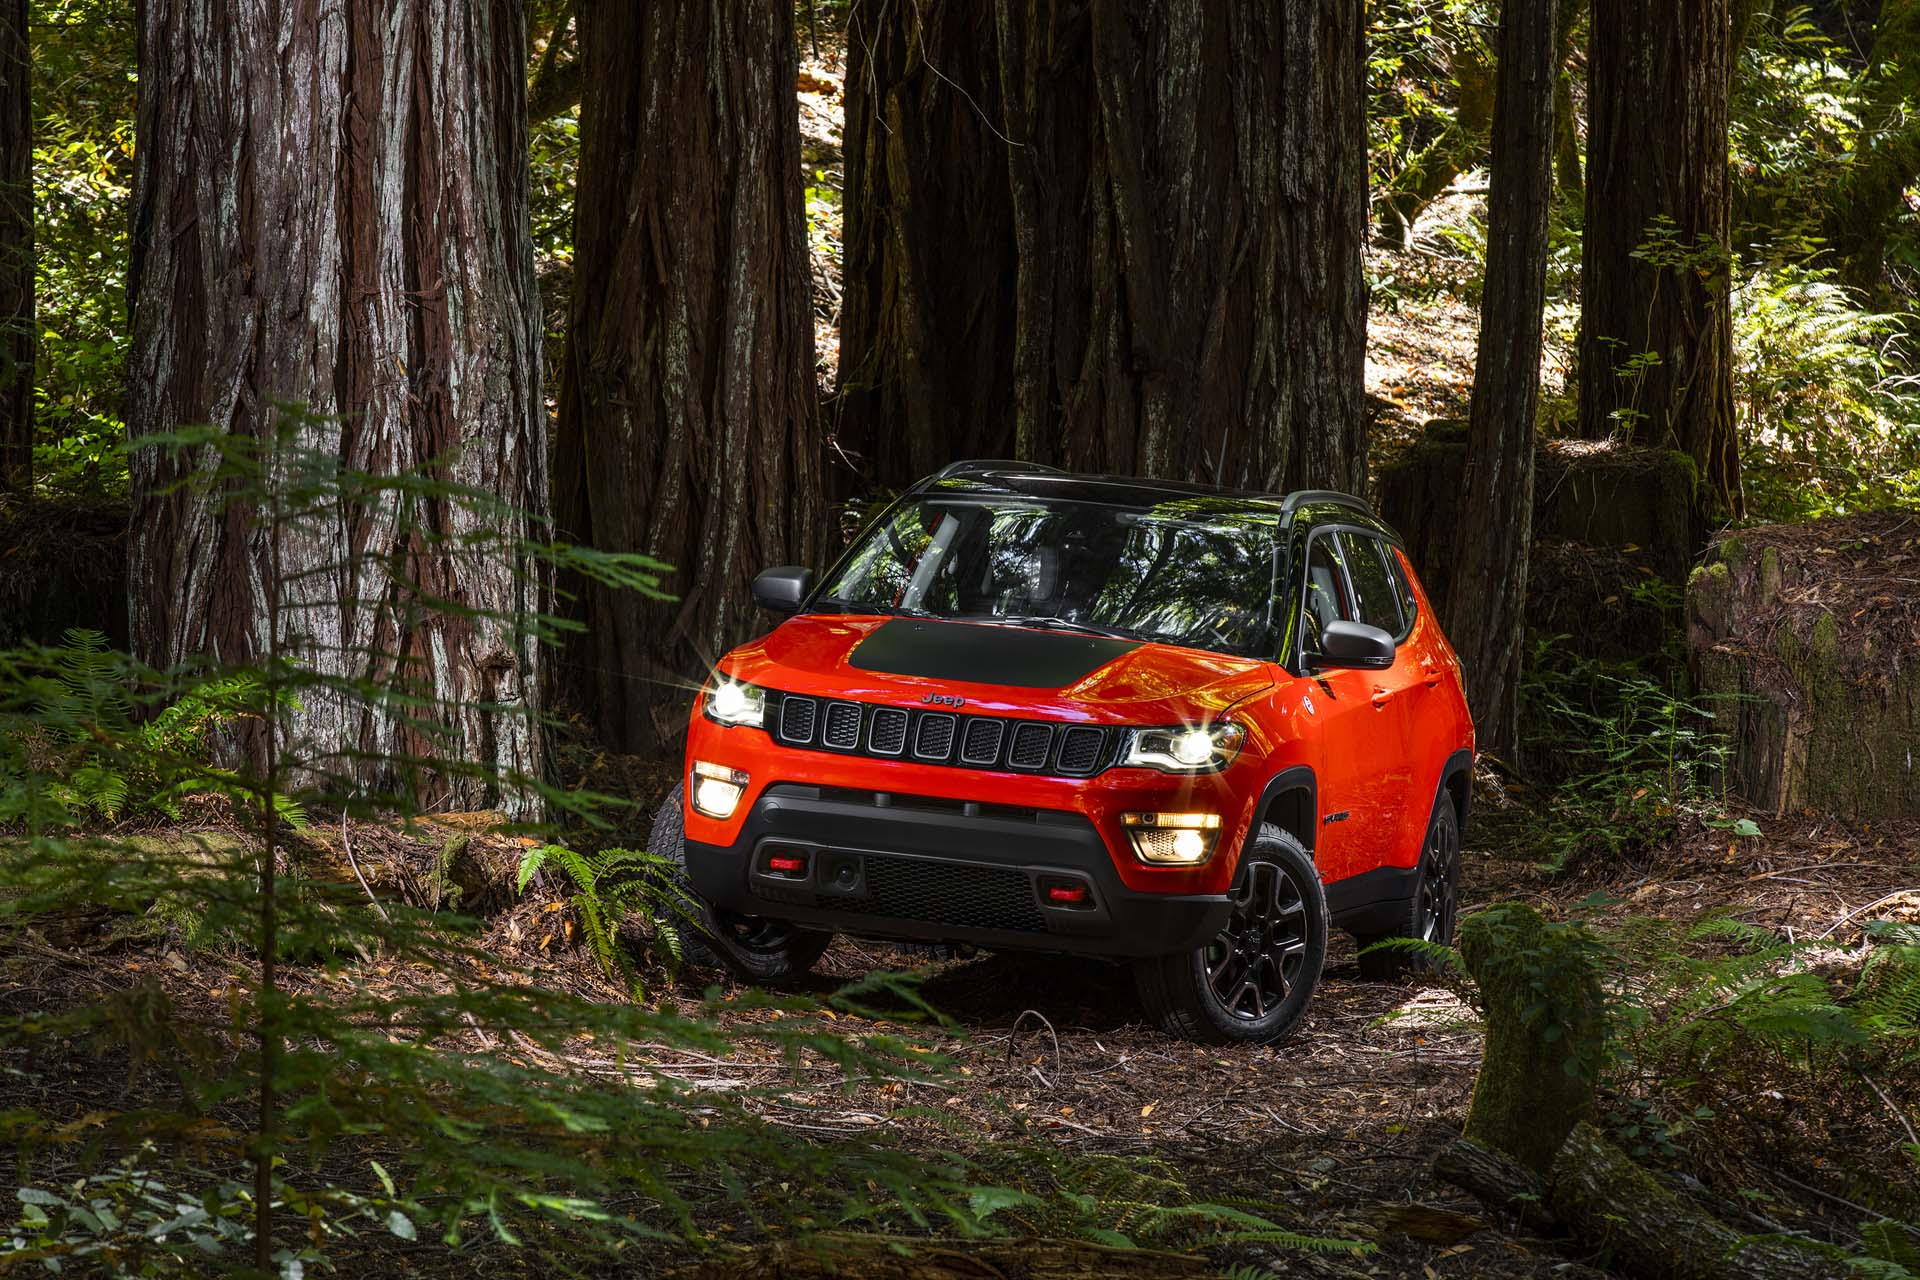 New 2017 Jeep Compass unveiled, replaces old Compass and Patriot too